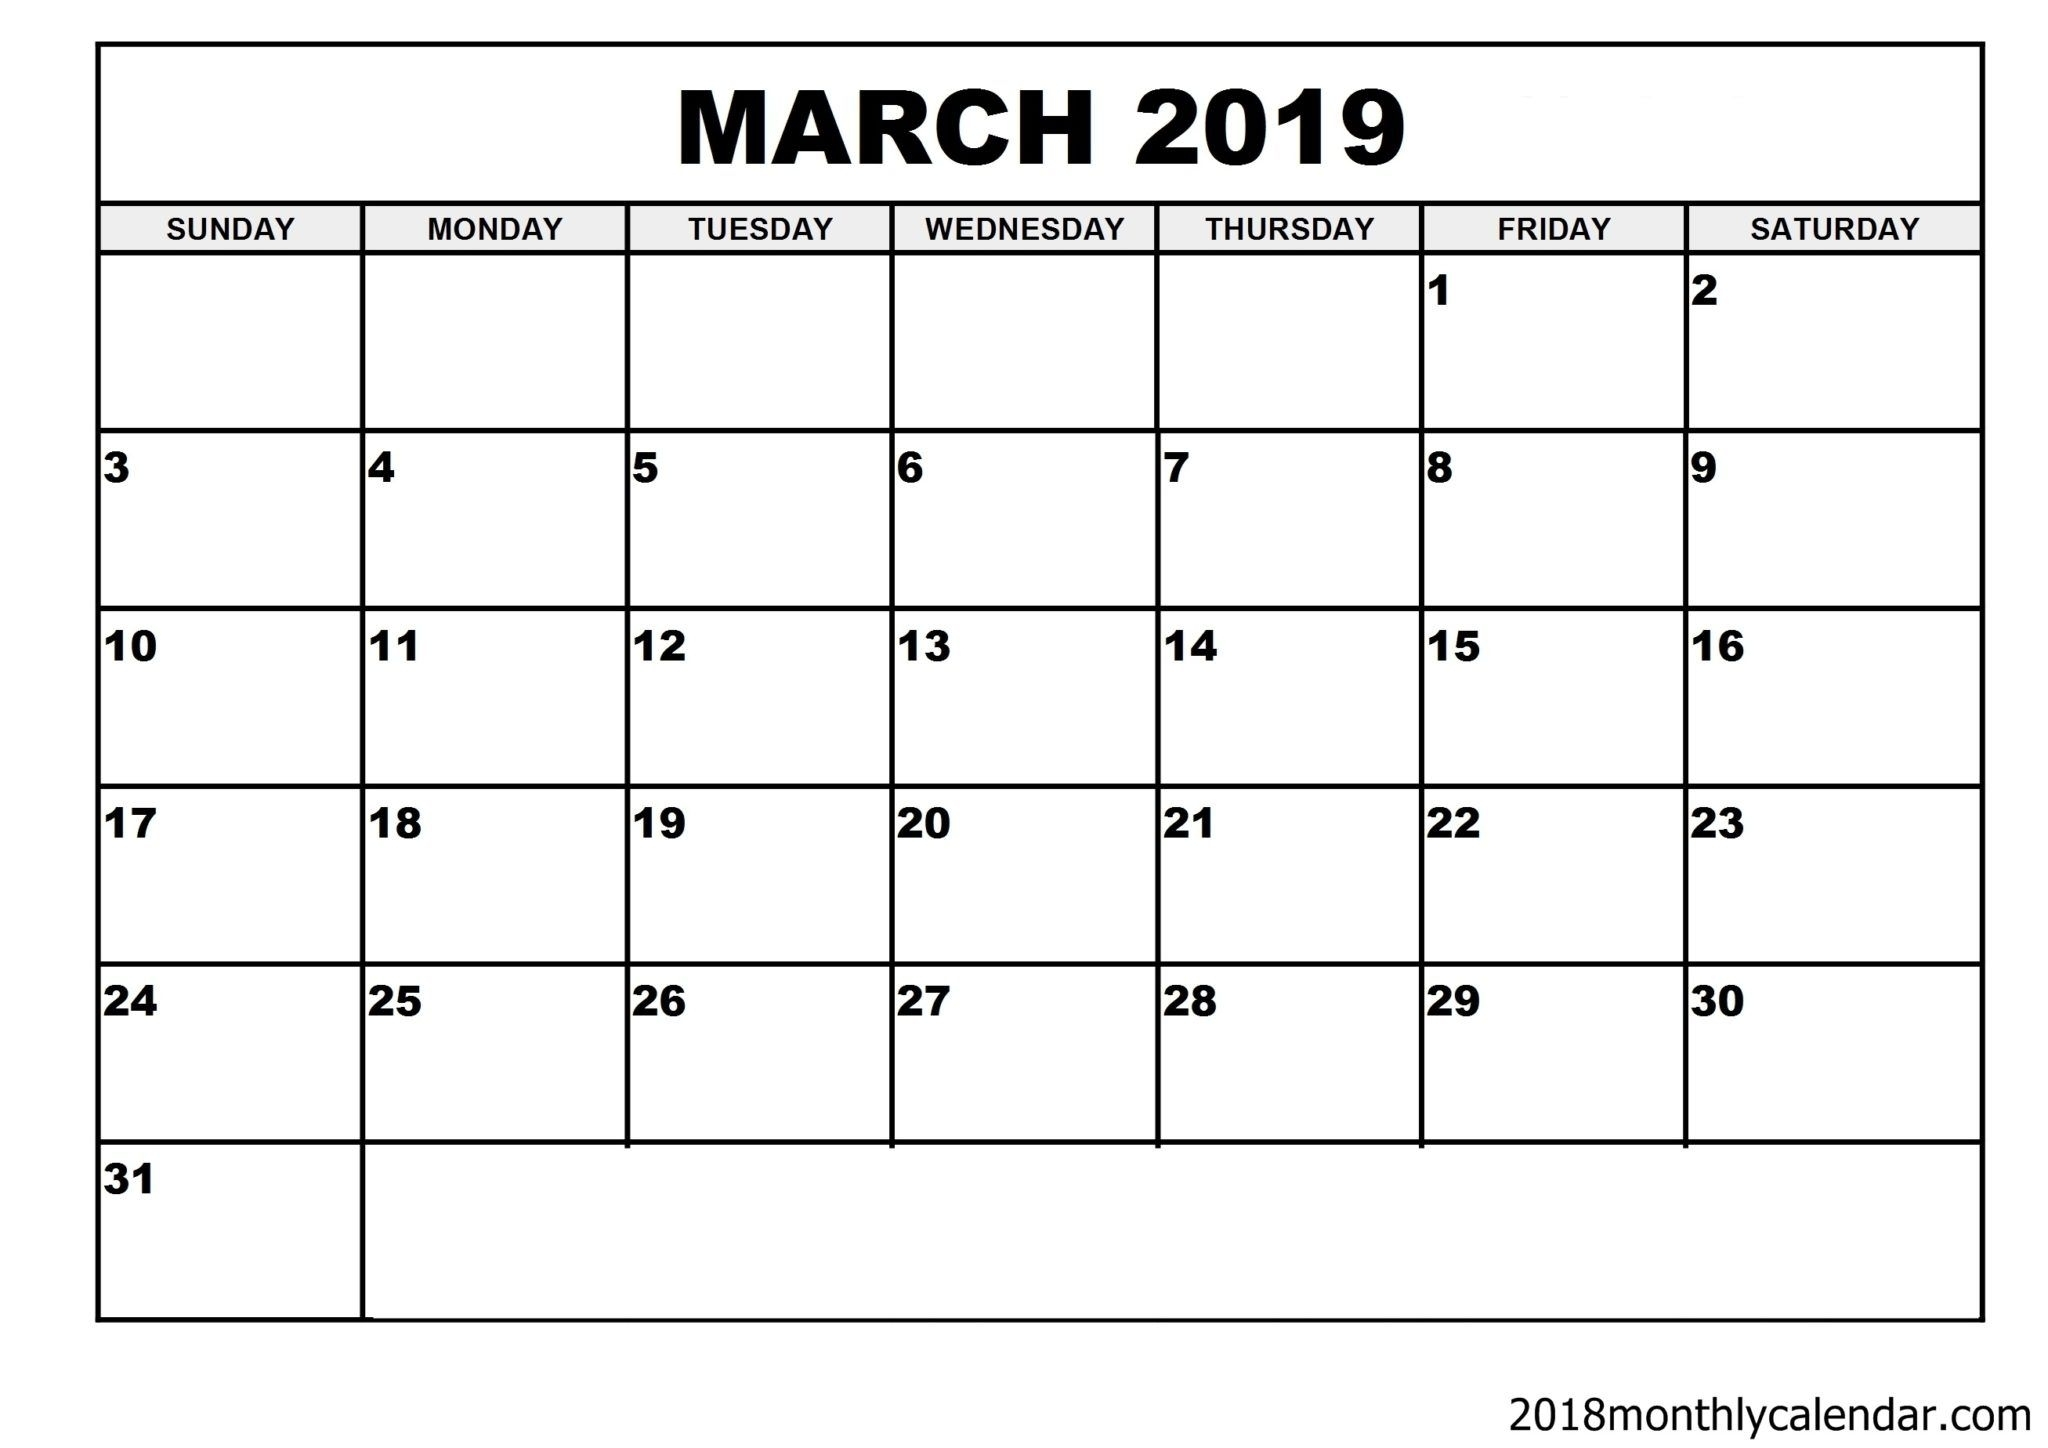 Download March 2019 Calendar – Blank Template - Editable Calendar within Monthly Calendar Templates Portrait Editable